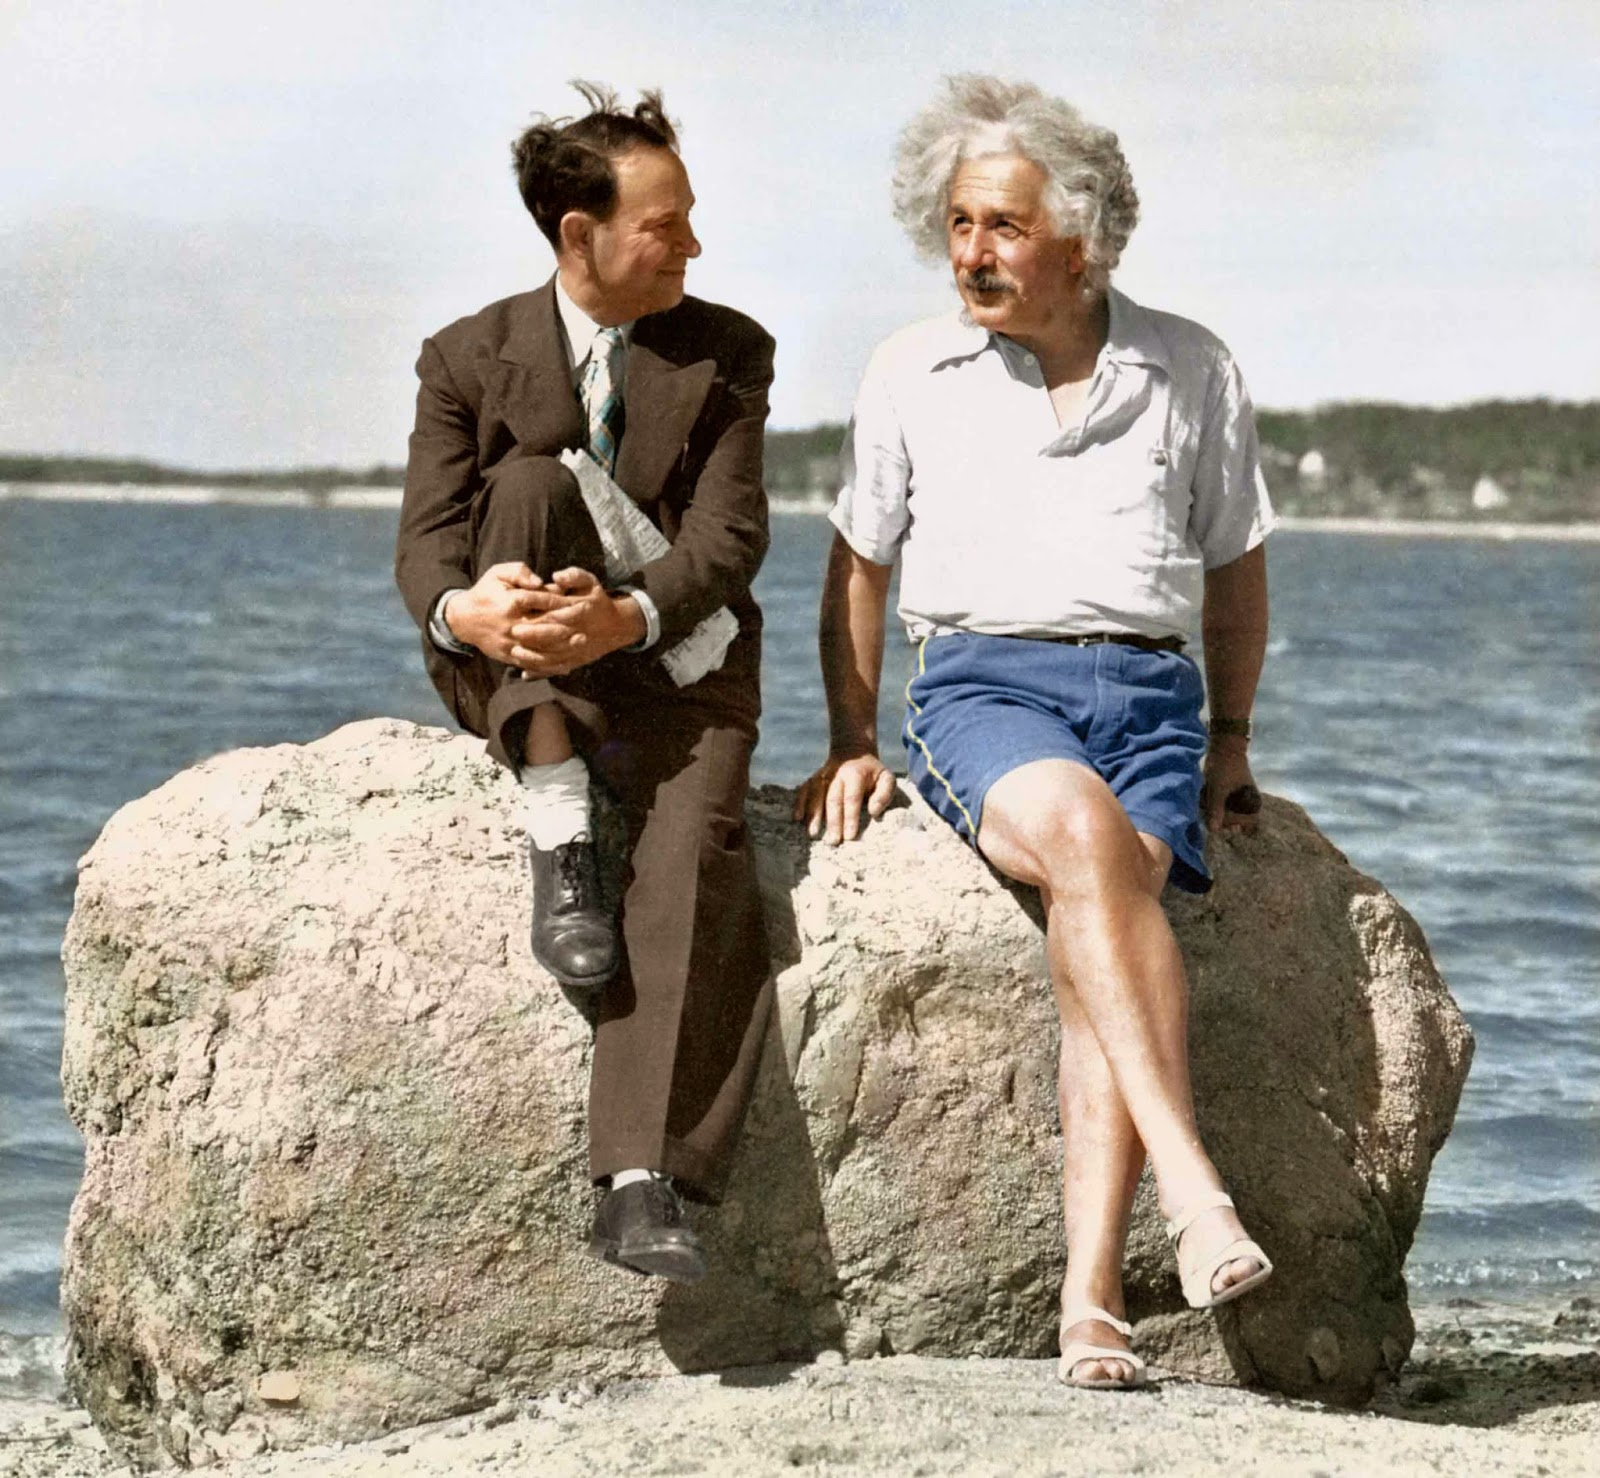 David Rothman was in his work clothes and Albert Einstein was dressed for the beach when they posed on this rock at Horseshoe Cove in Nassau Point in the summer of 1939.